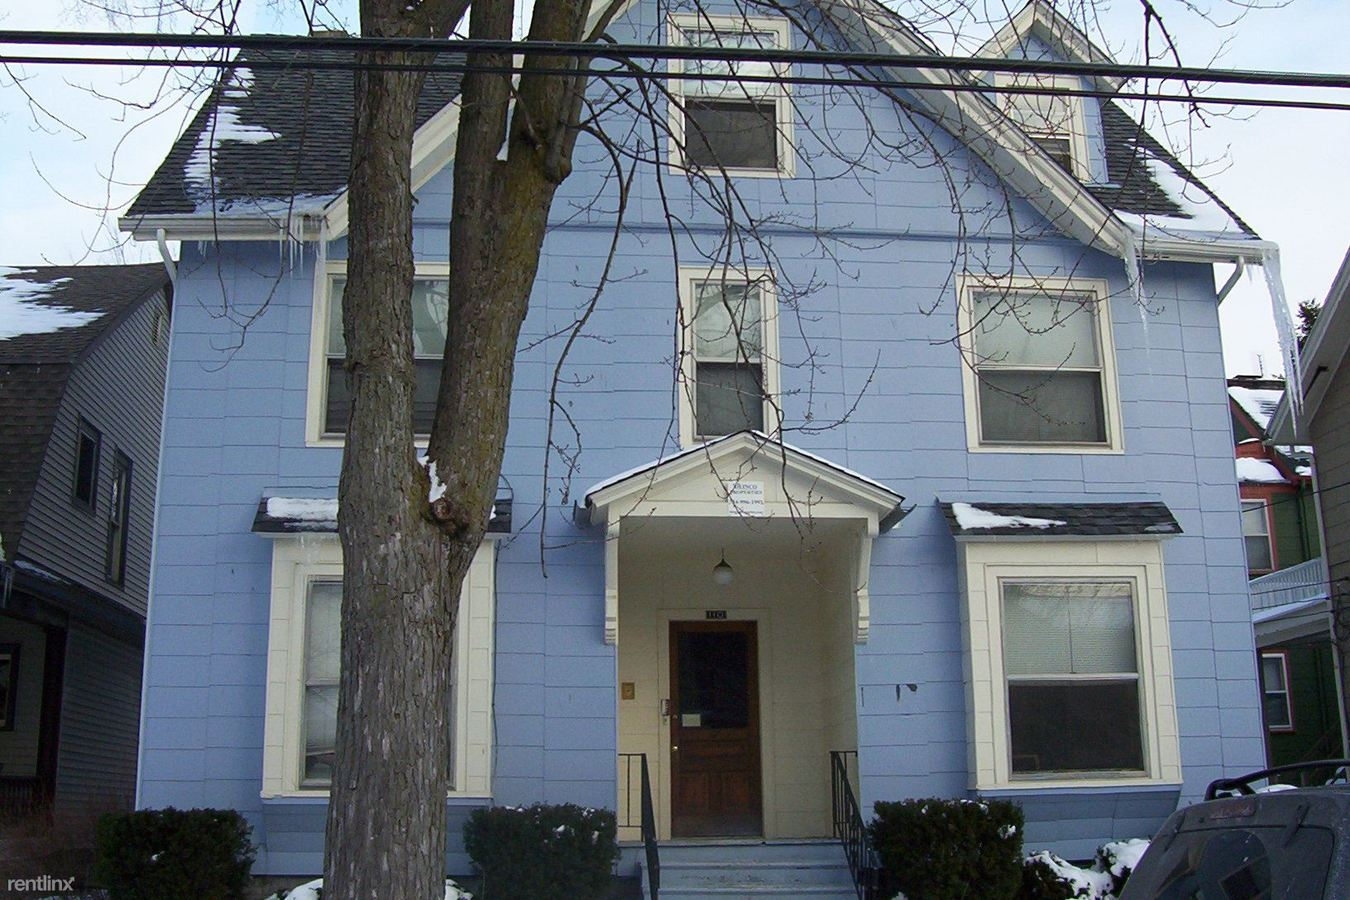 1 Bedroom 1 Bathroom Apartment for rent at 110 N Thayer St in Ann Arbor, MI